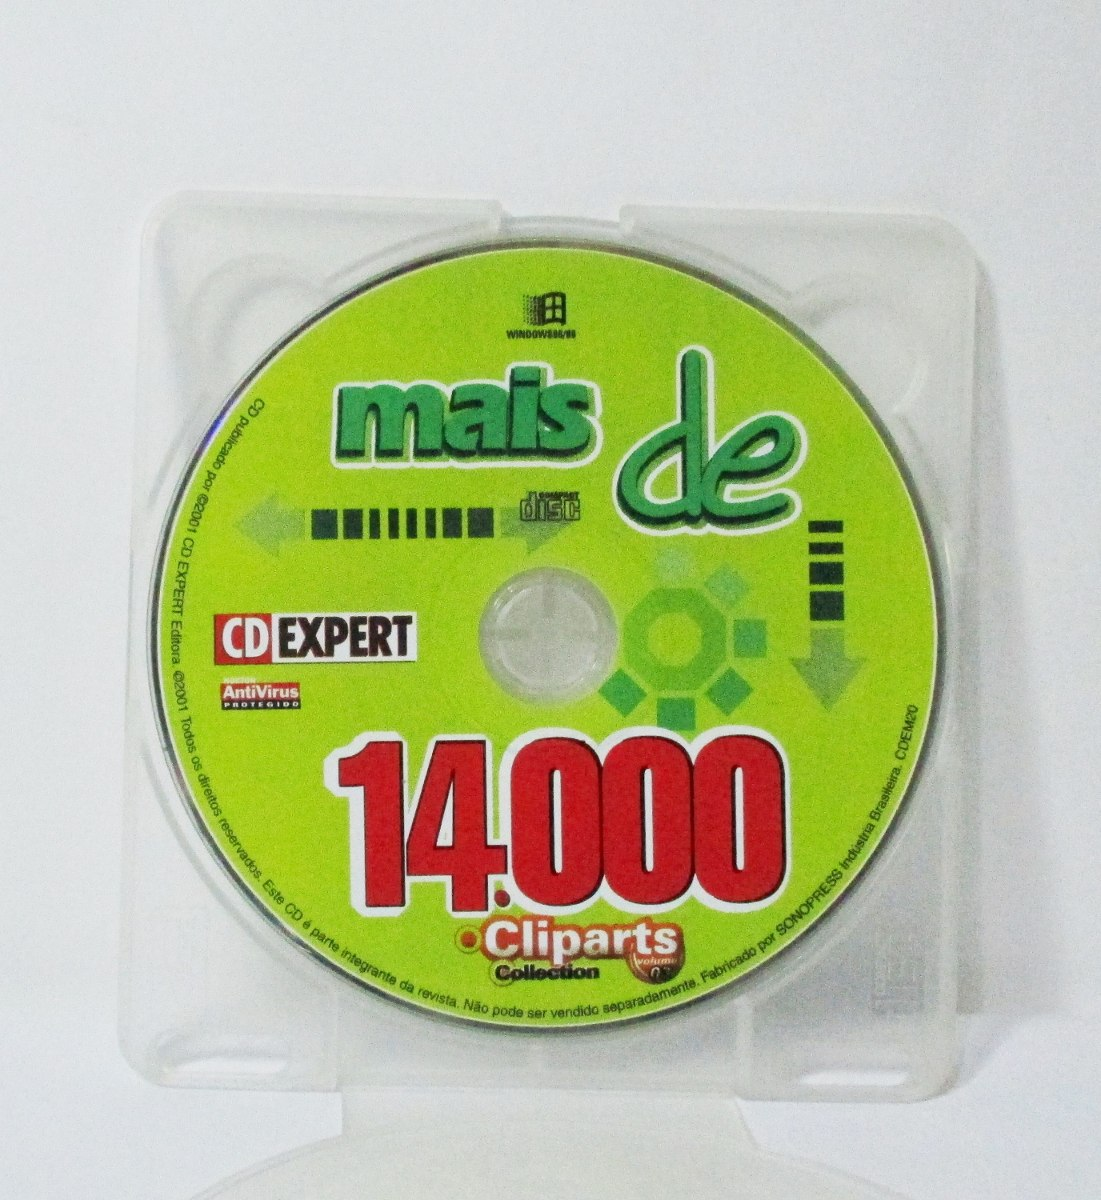 Cd expert cliparts clip library download Cd Expert - Mais De 14.000 Cliparts Collection + Livreto clip library download